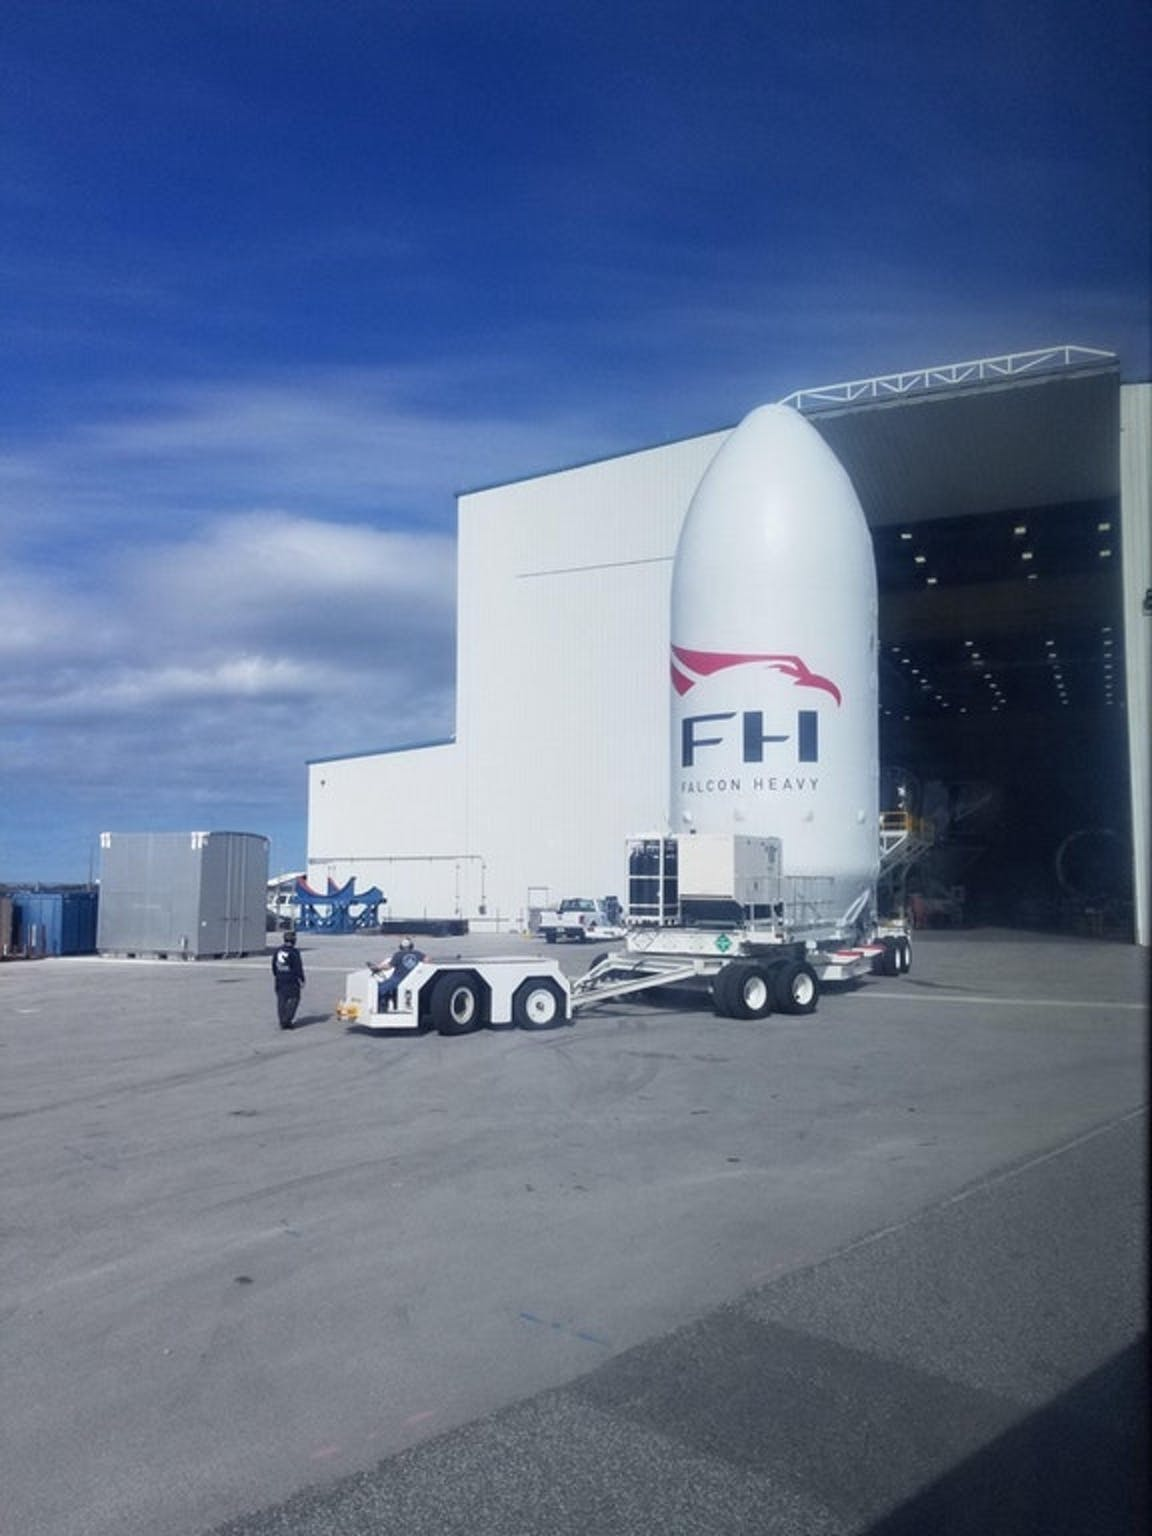 SpaceX Falcon Heavy Fairing Spotted At Cape Canaveral | Inverse